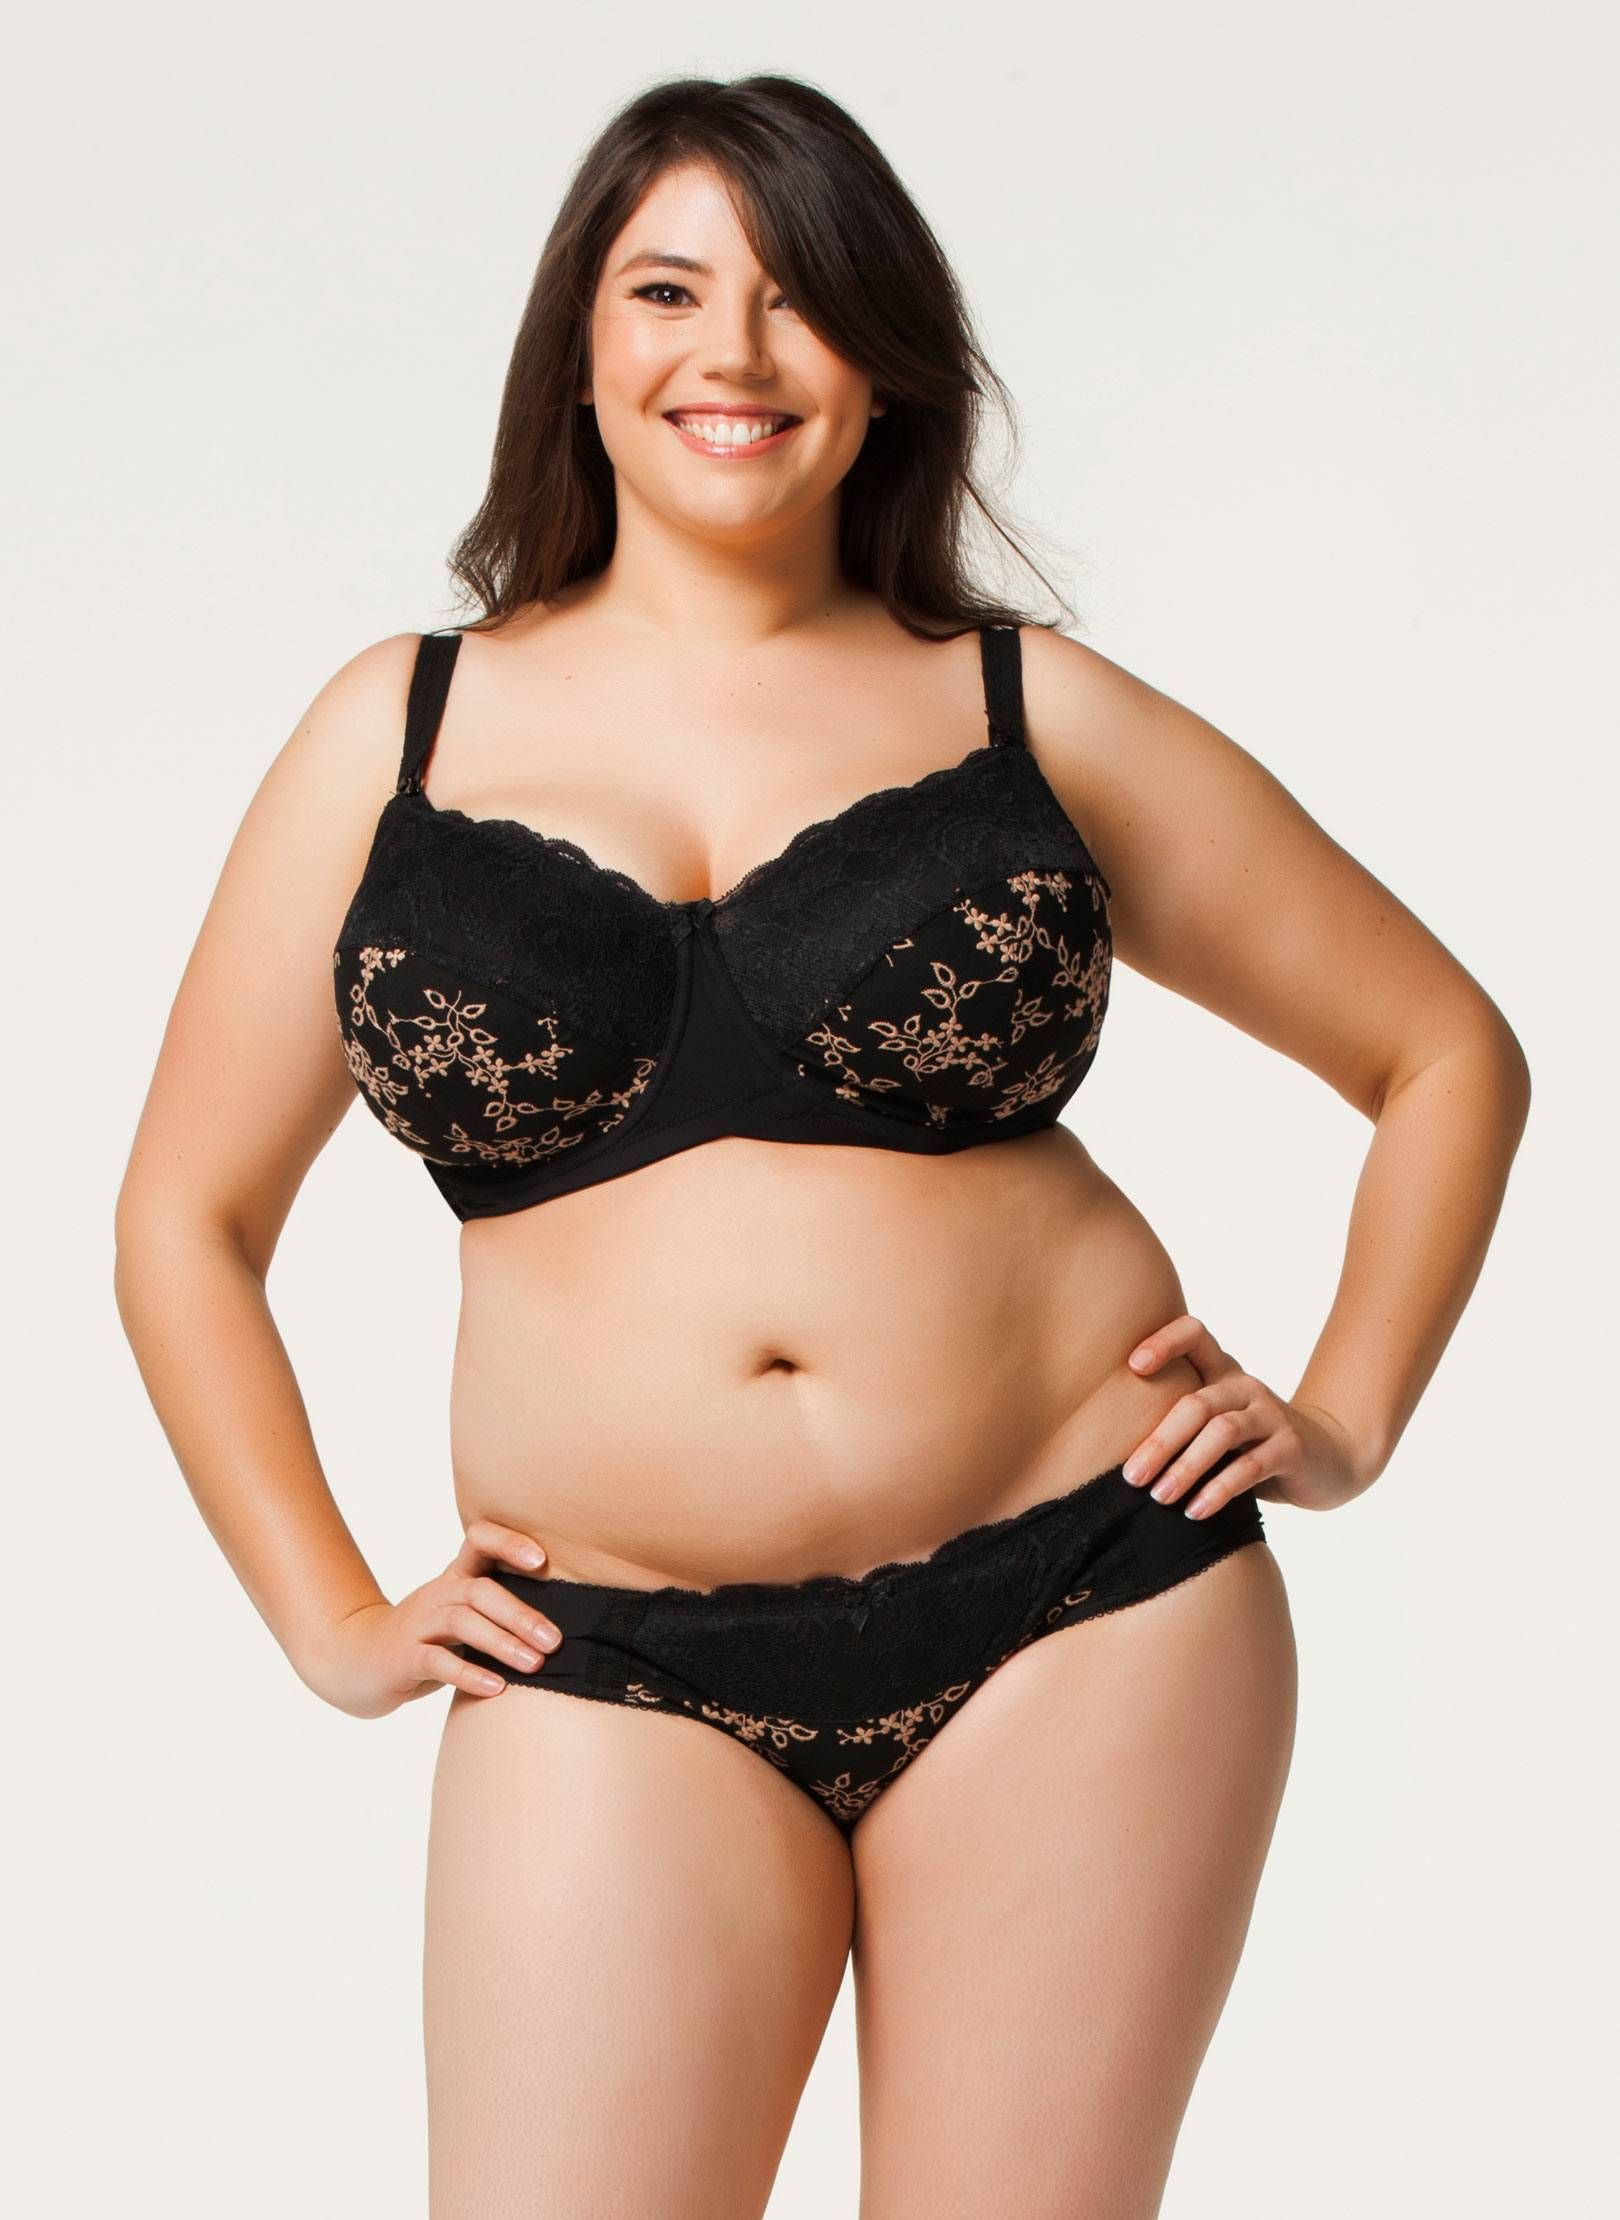 Dark Chocolate Underwire Nursing Bra | Cake Maternity | BRAS ...